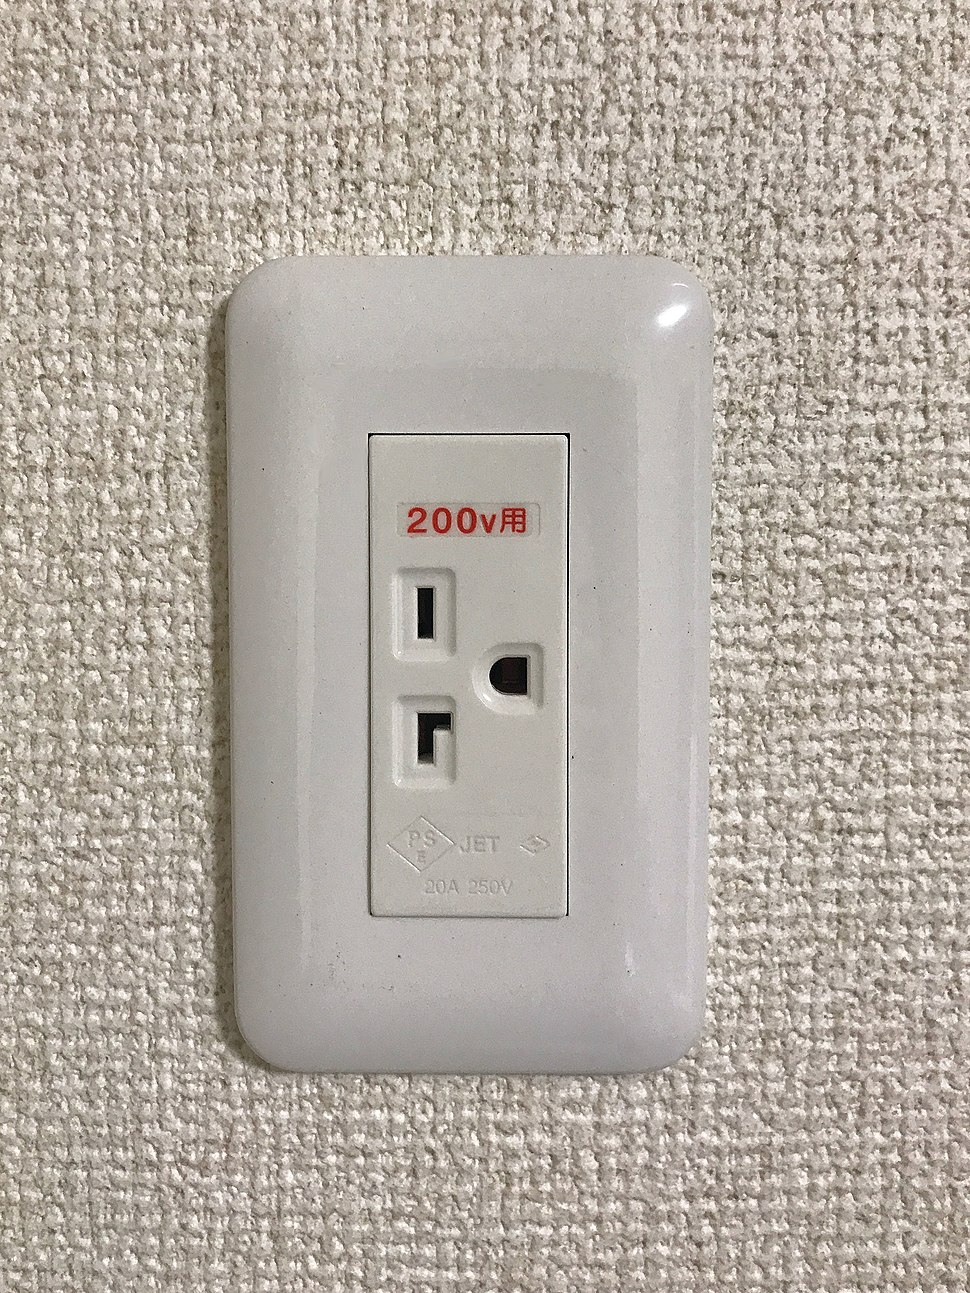 Japanese air conditioner electrical outlet 200v